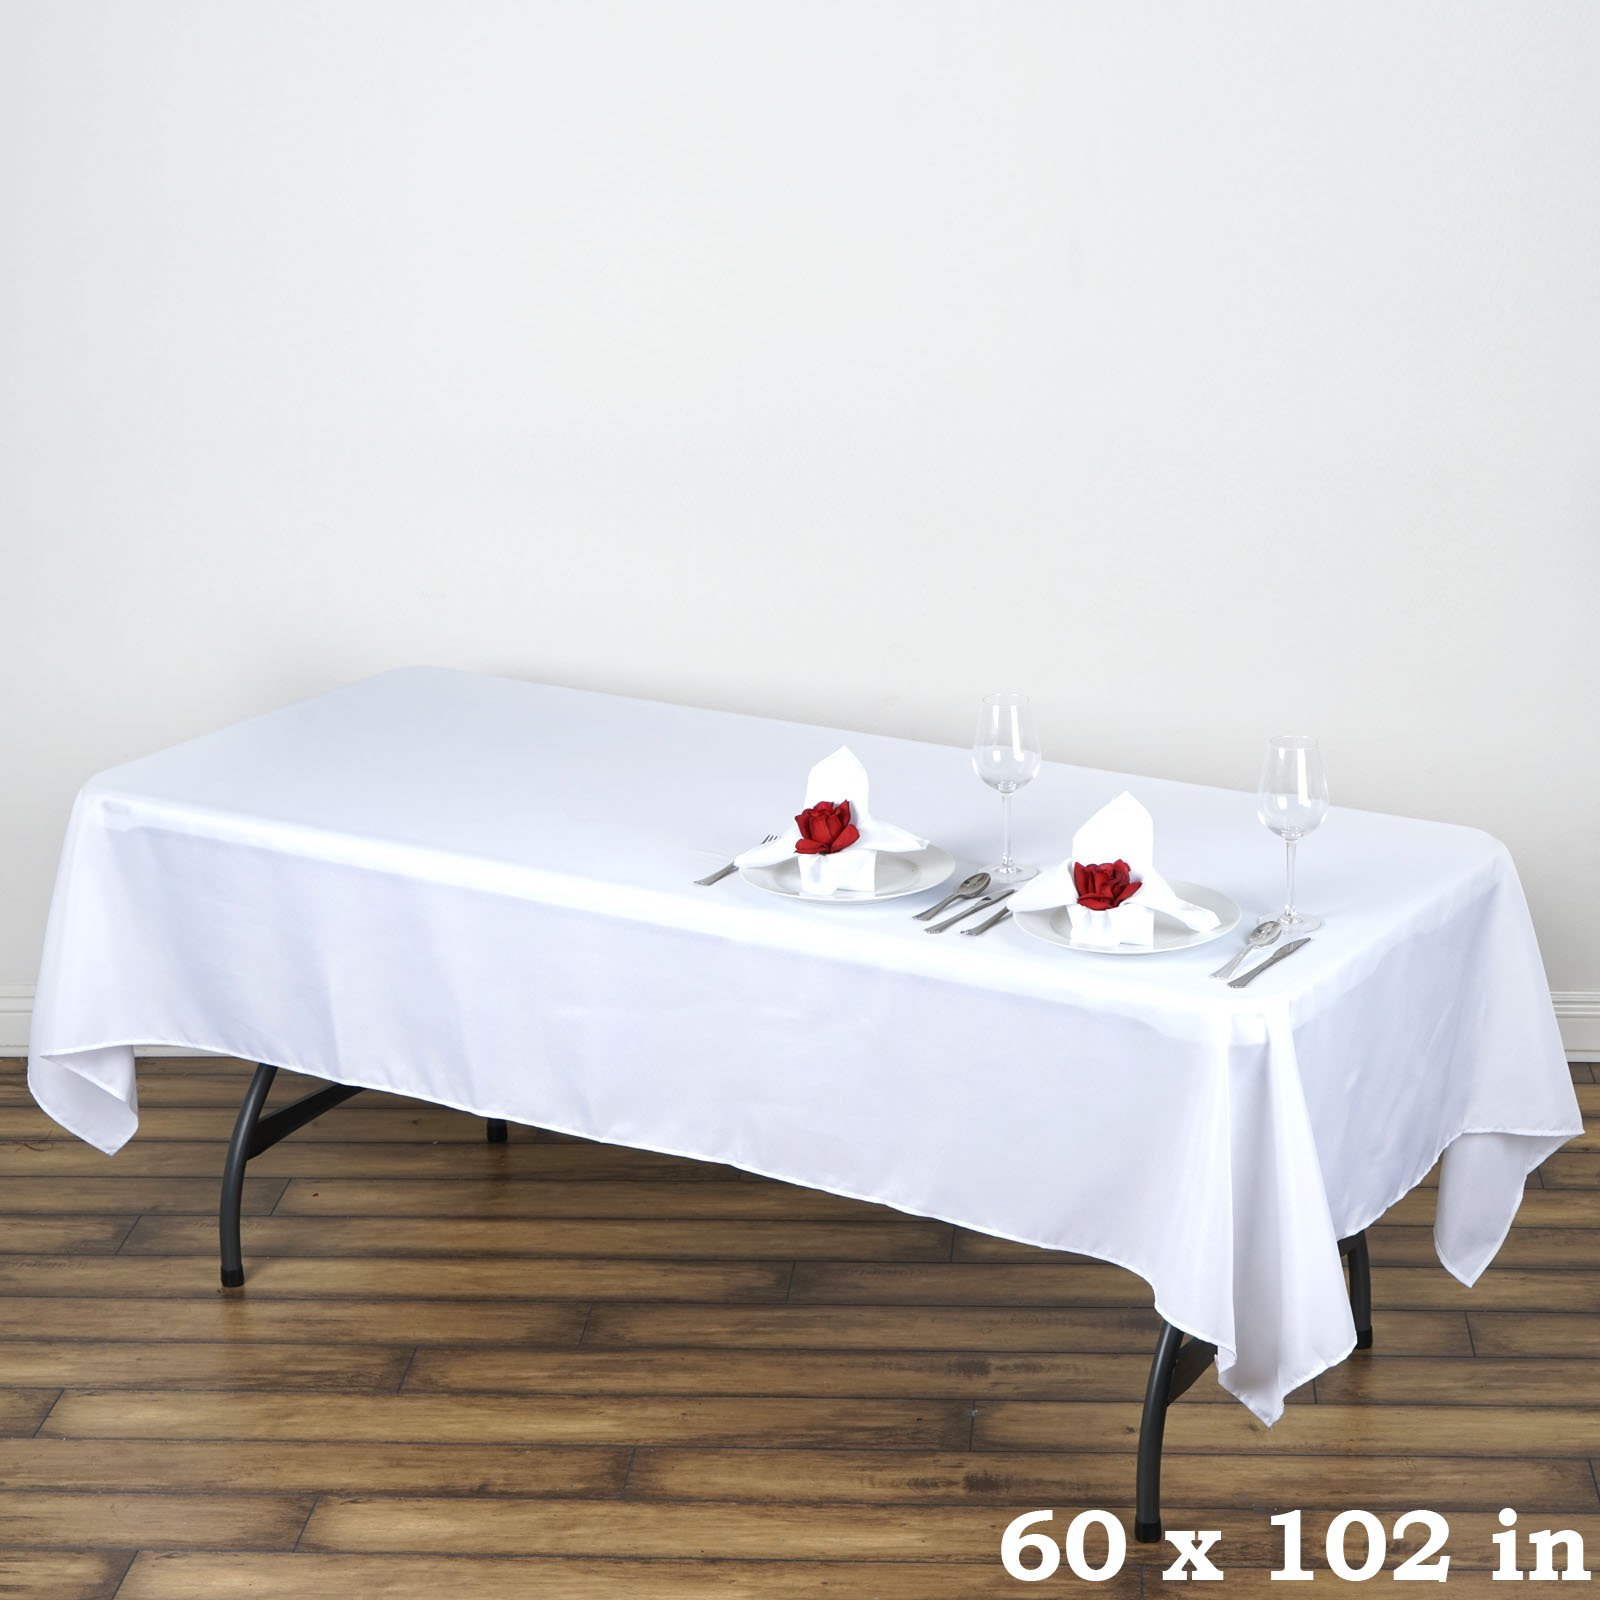 Efavormart 5pcs of White 60x102 Polyester Rectangle Tablecloths Banquet Linen Wedding Party Restaurant Tablecloth by Efavormart (Image #1)